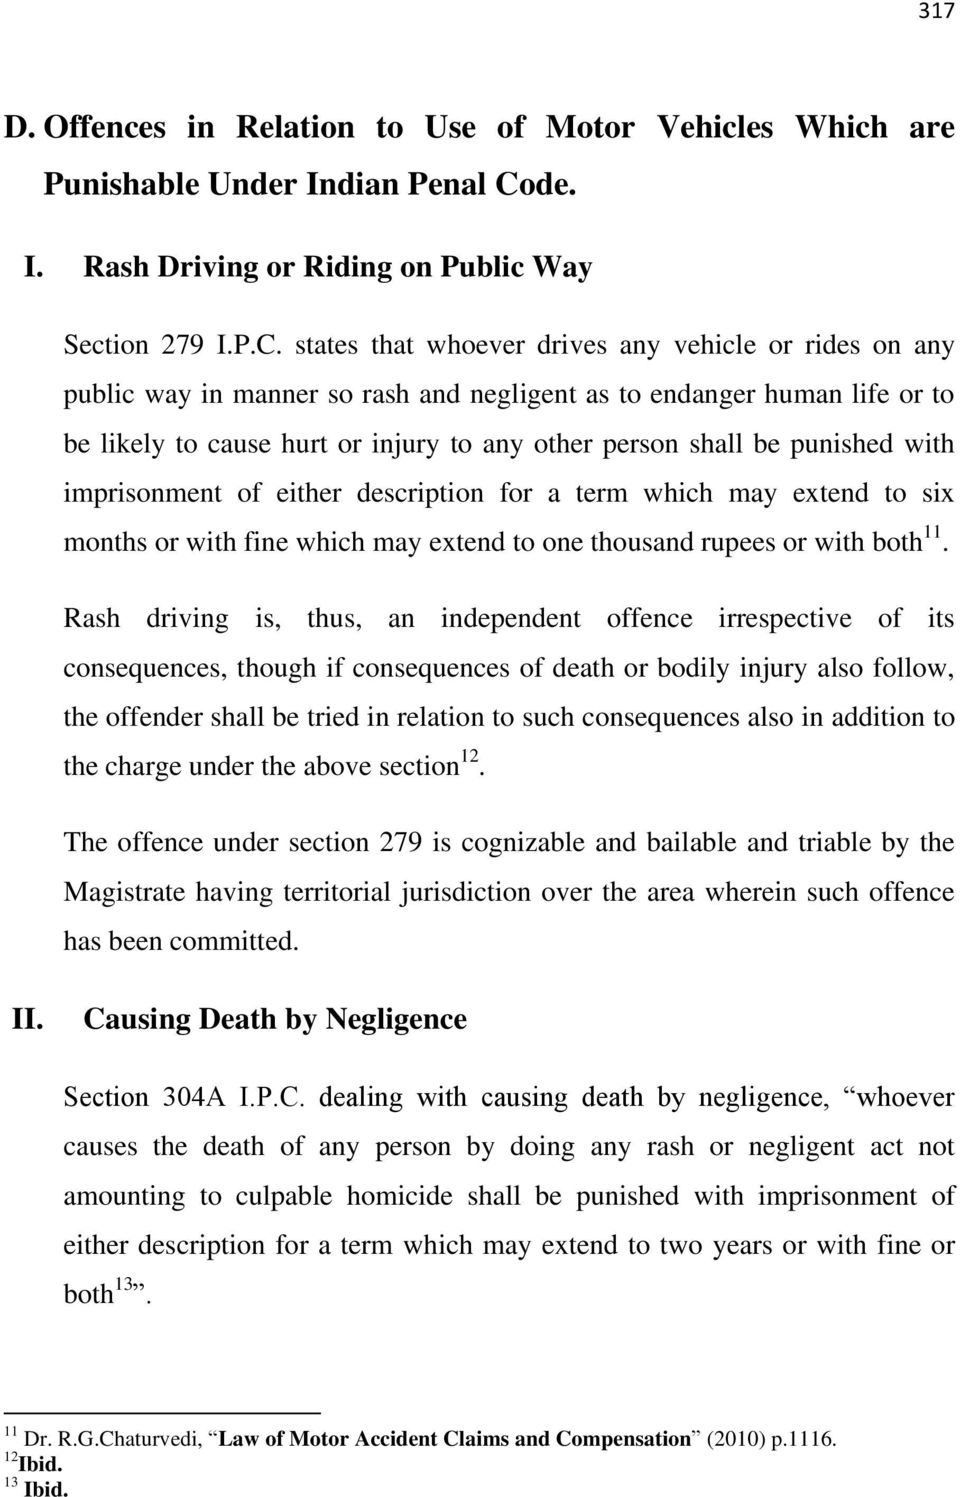 states that whoever drives any vehicle or rides on any public way in manner so rash and negligent as to endanger human life or to be likely to cause hurt or injury to any other person shall be